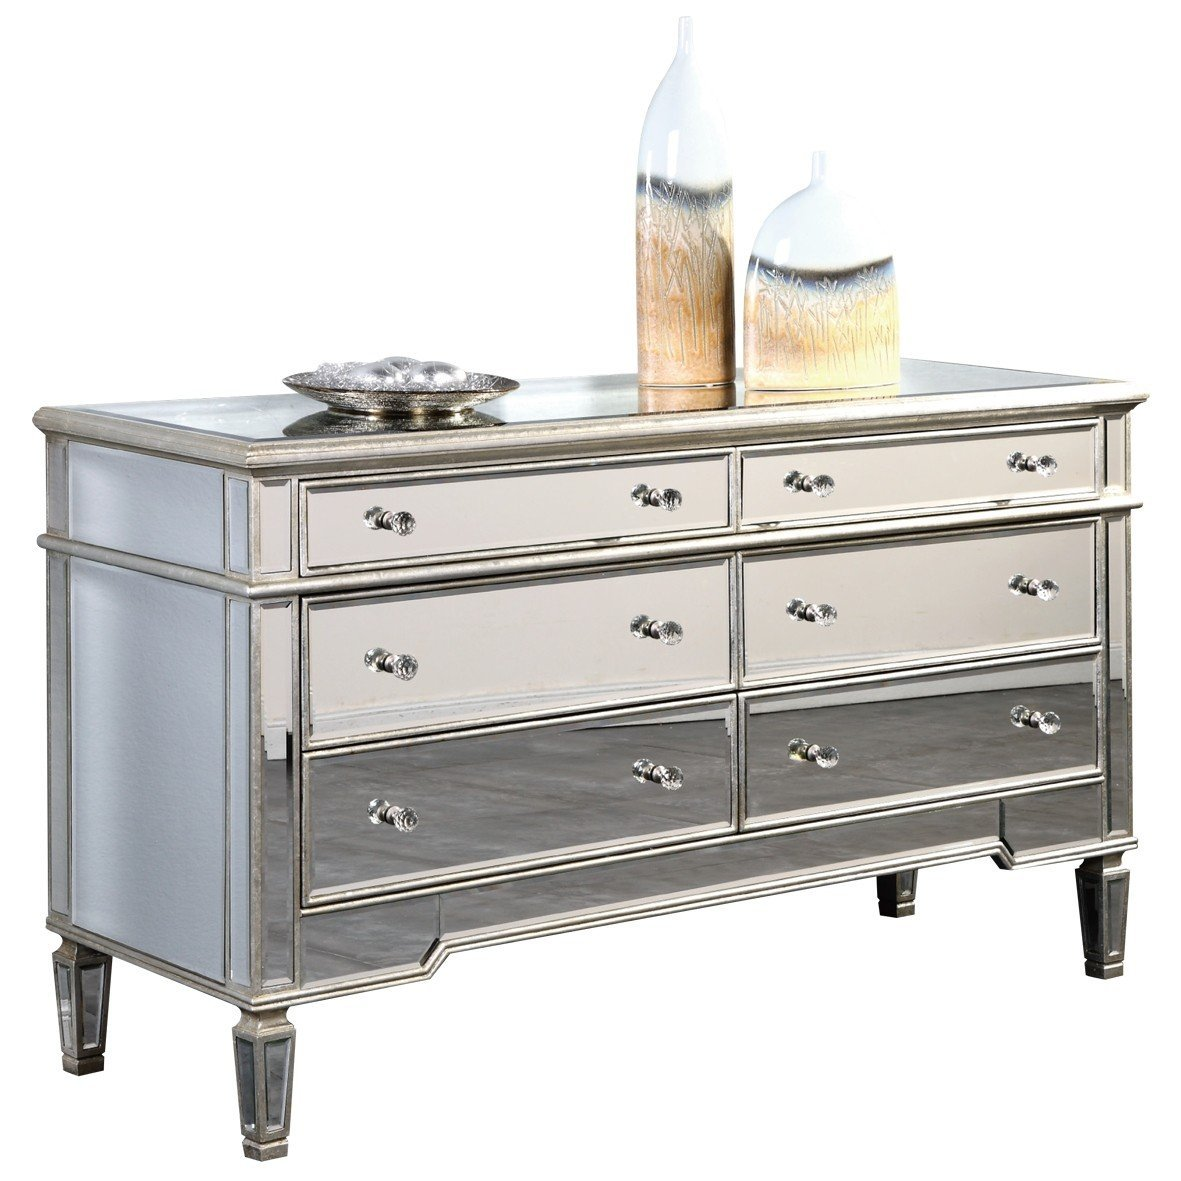 """Elegant Lighting Florentine MF1-1005SC 6-Drawer Dresser with Silver/Clear Mirror, 60"""" by 20"""" by 34"""""""